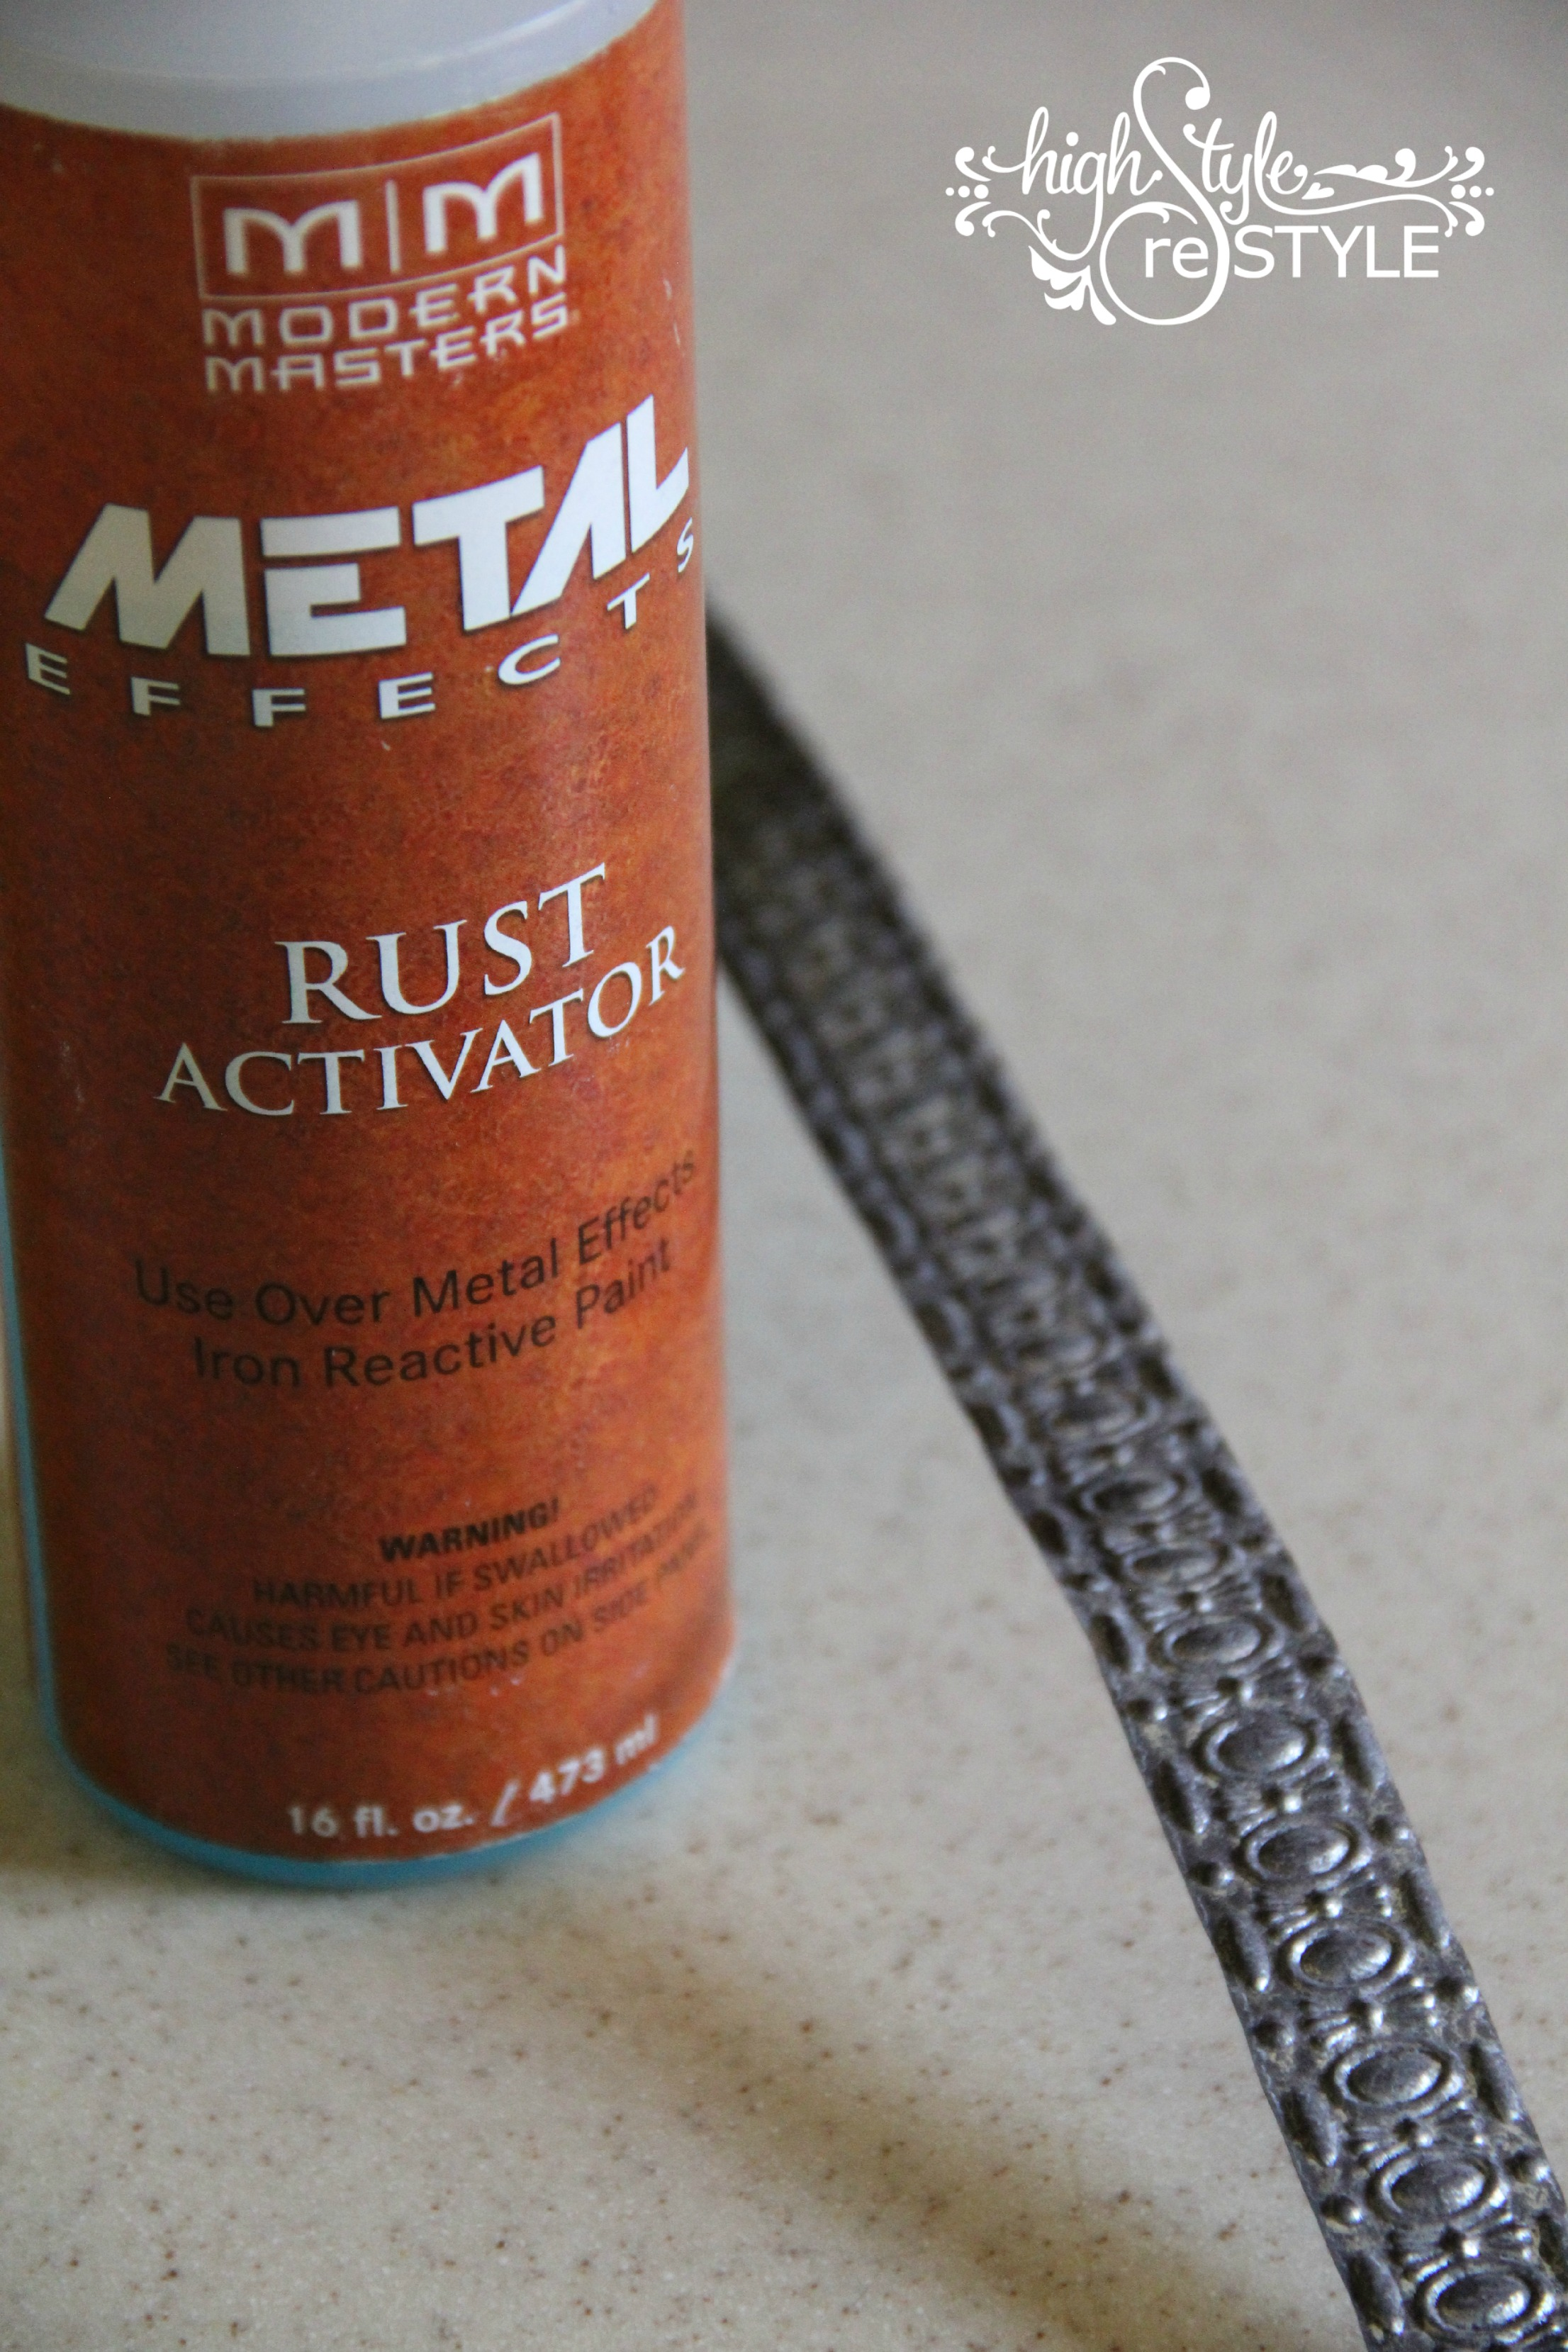 GALVANIZED TO PERFECTION WITH MODERN MASTERS RUST ACTIVATOR